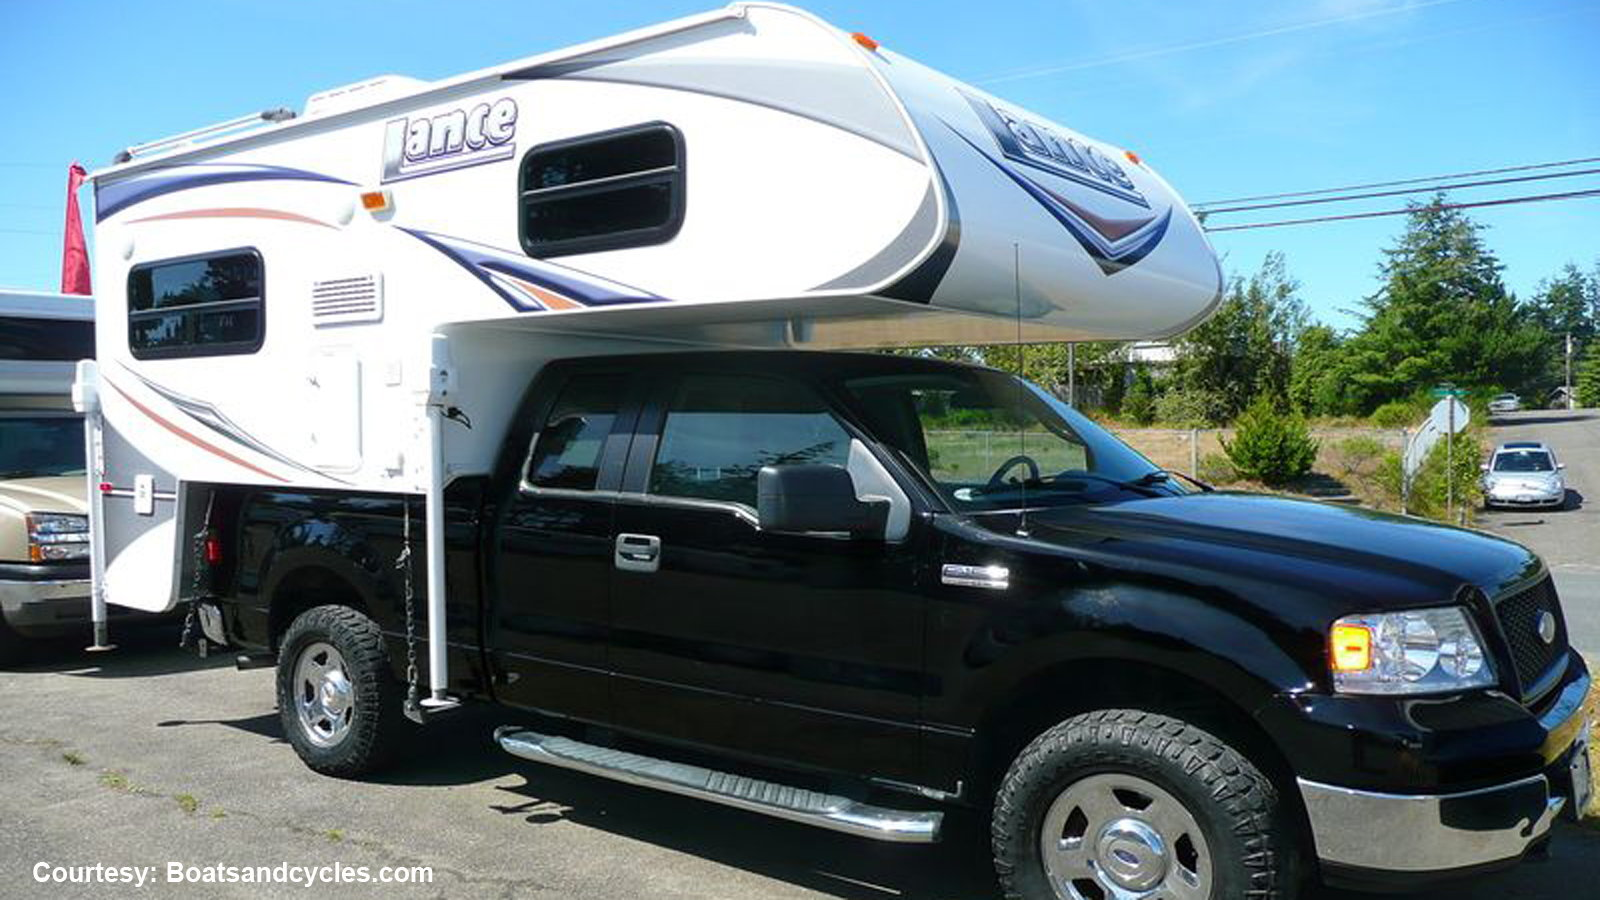 Top 5 Reasons for Camper Theft and Damage